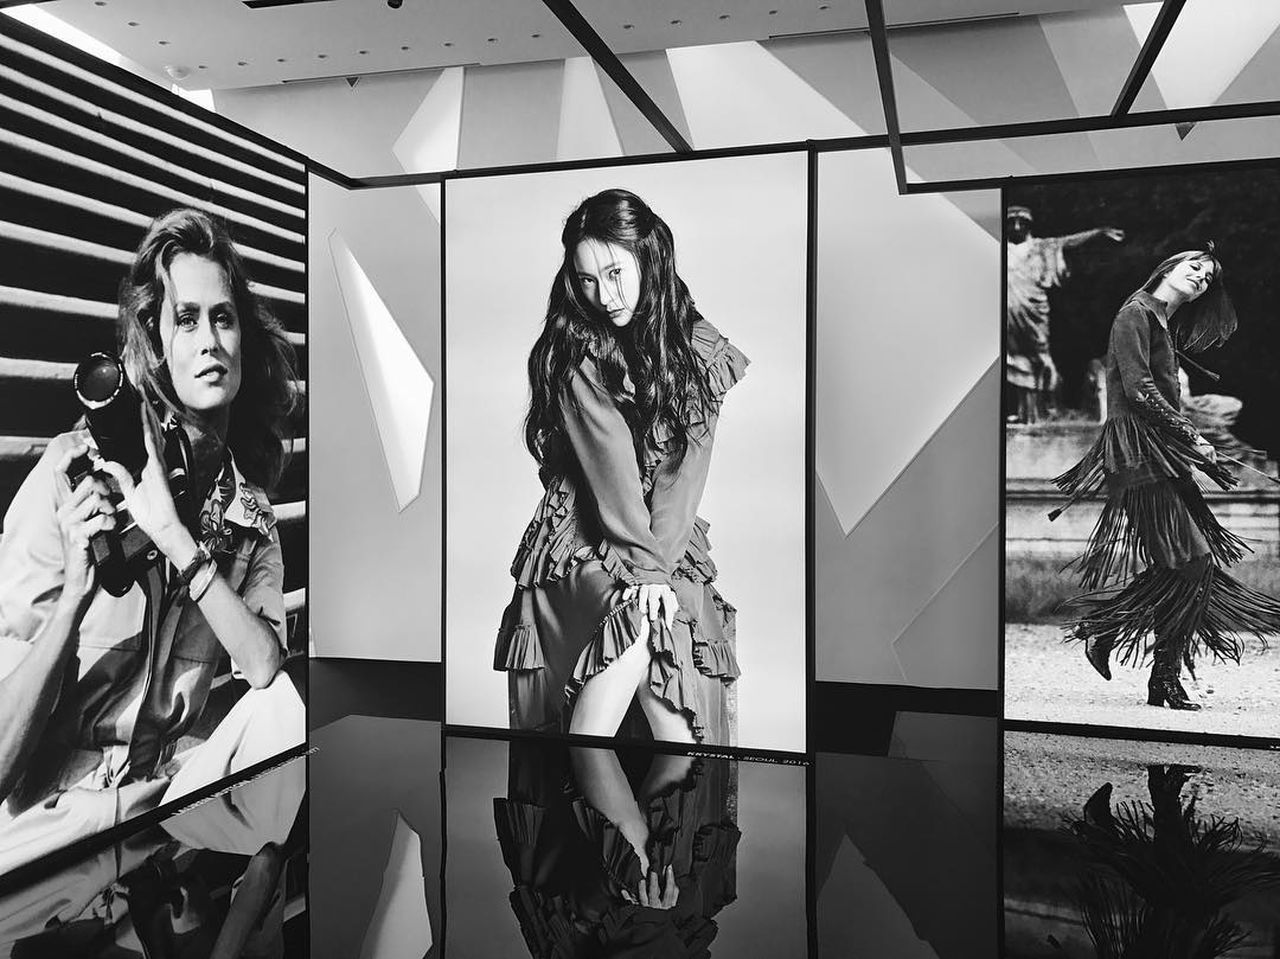 Krystal Jung among those international model / celebrities. I'm so proud of her ㅠ 3 ㅠ Krystal Krystal Fx Krystaljung Front View Lifestyles Faces Of EyeEm Tod's Krystal Jung Women Who Inspire You Standing Inspirations Beautiful Woman